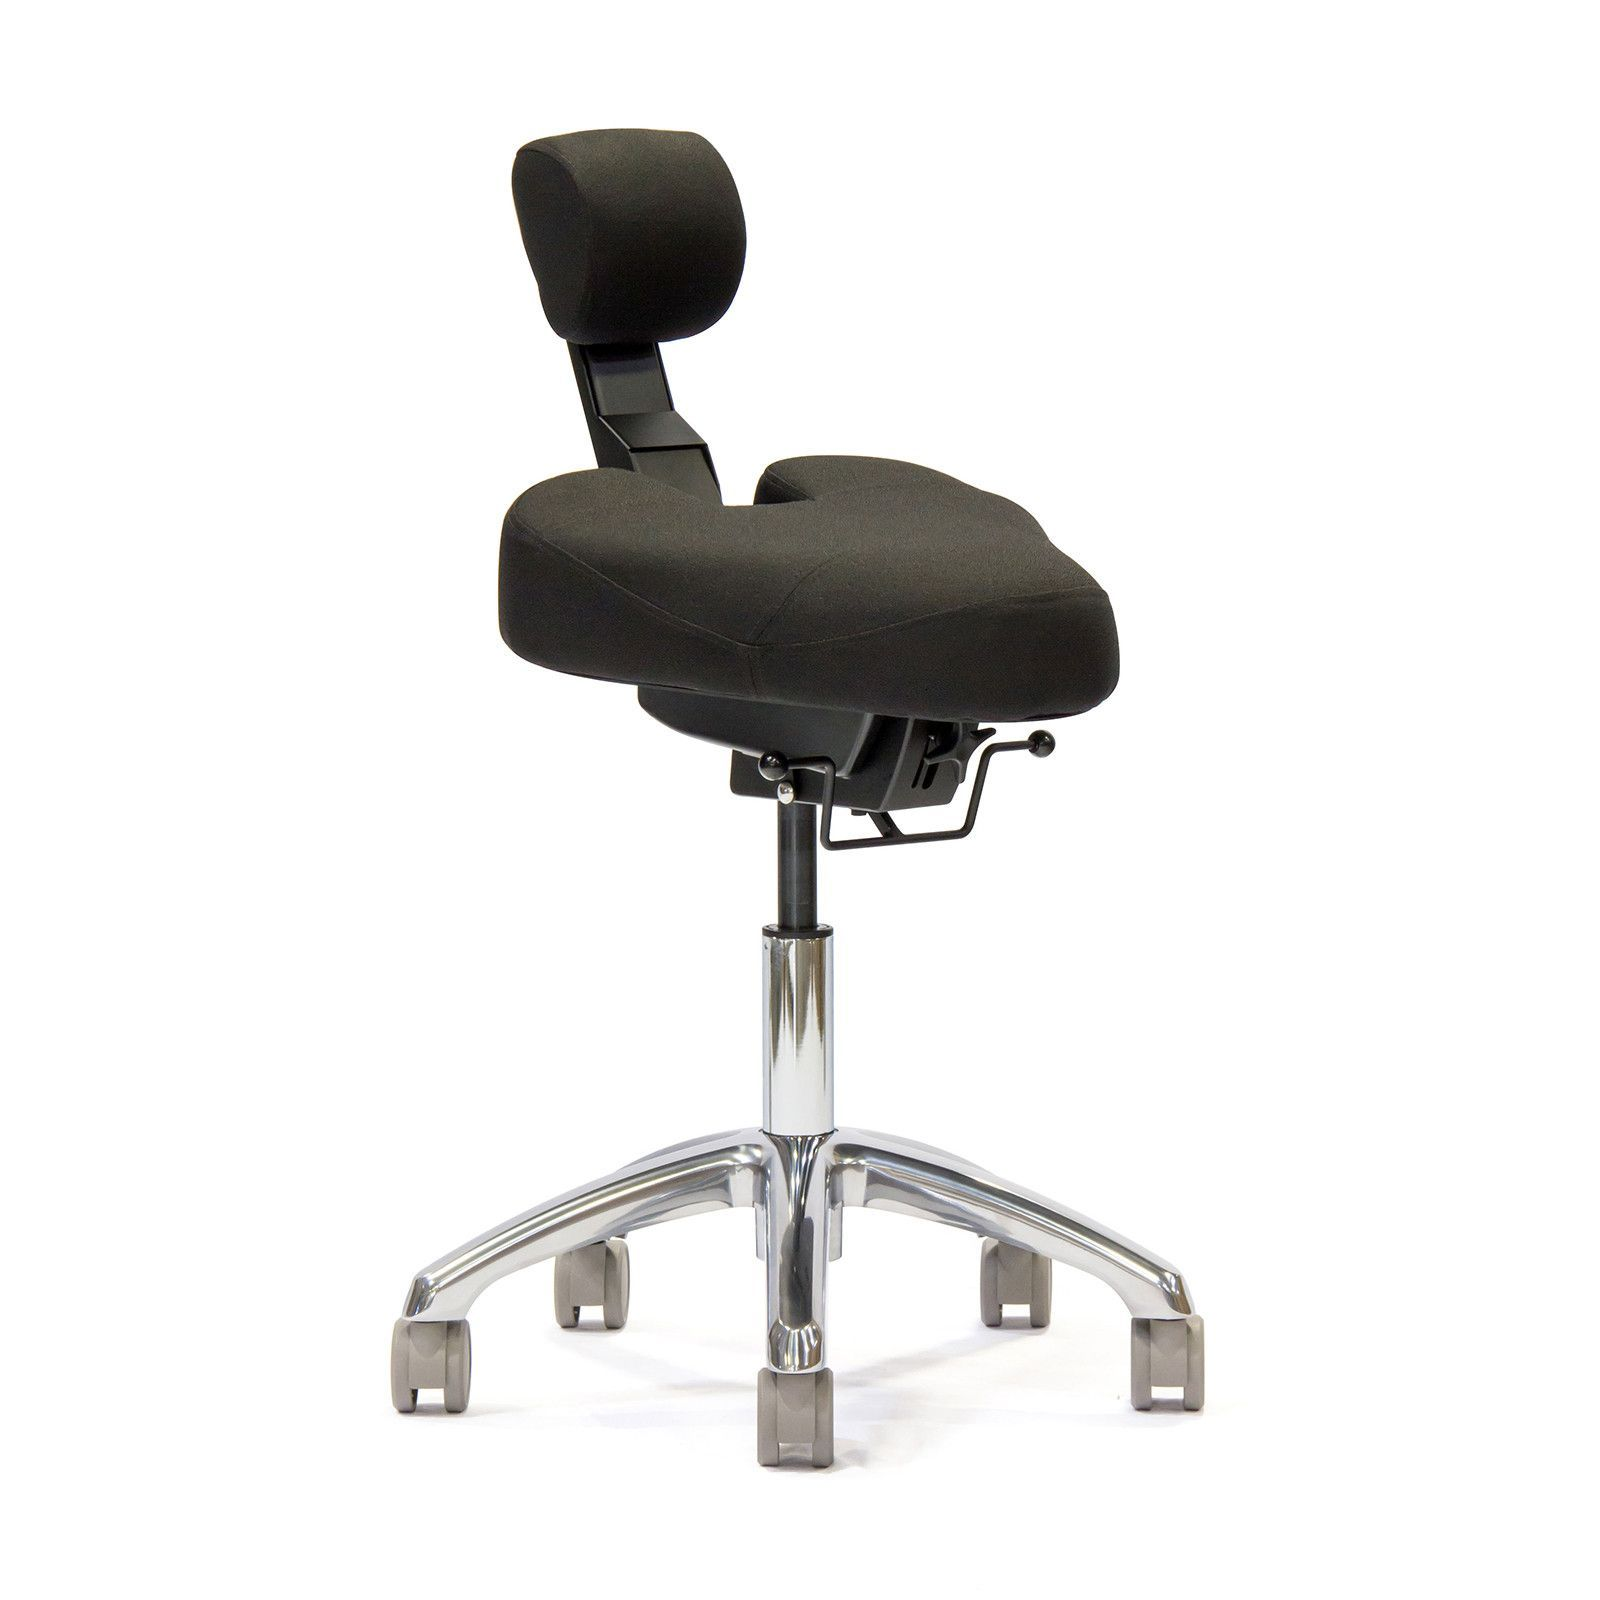 Dynamic Saddle Style Ergonomic Chair Chair Best Ergonomic Chair Ergonomic Chair